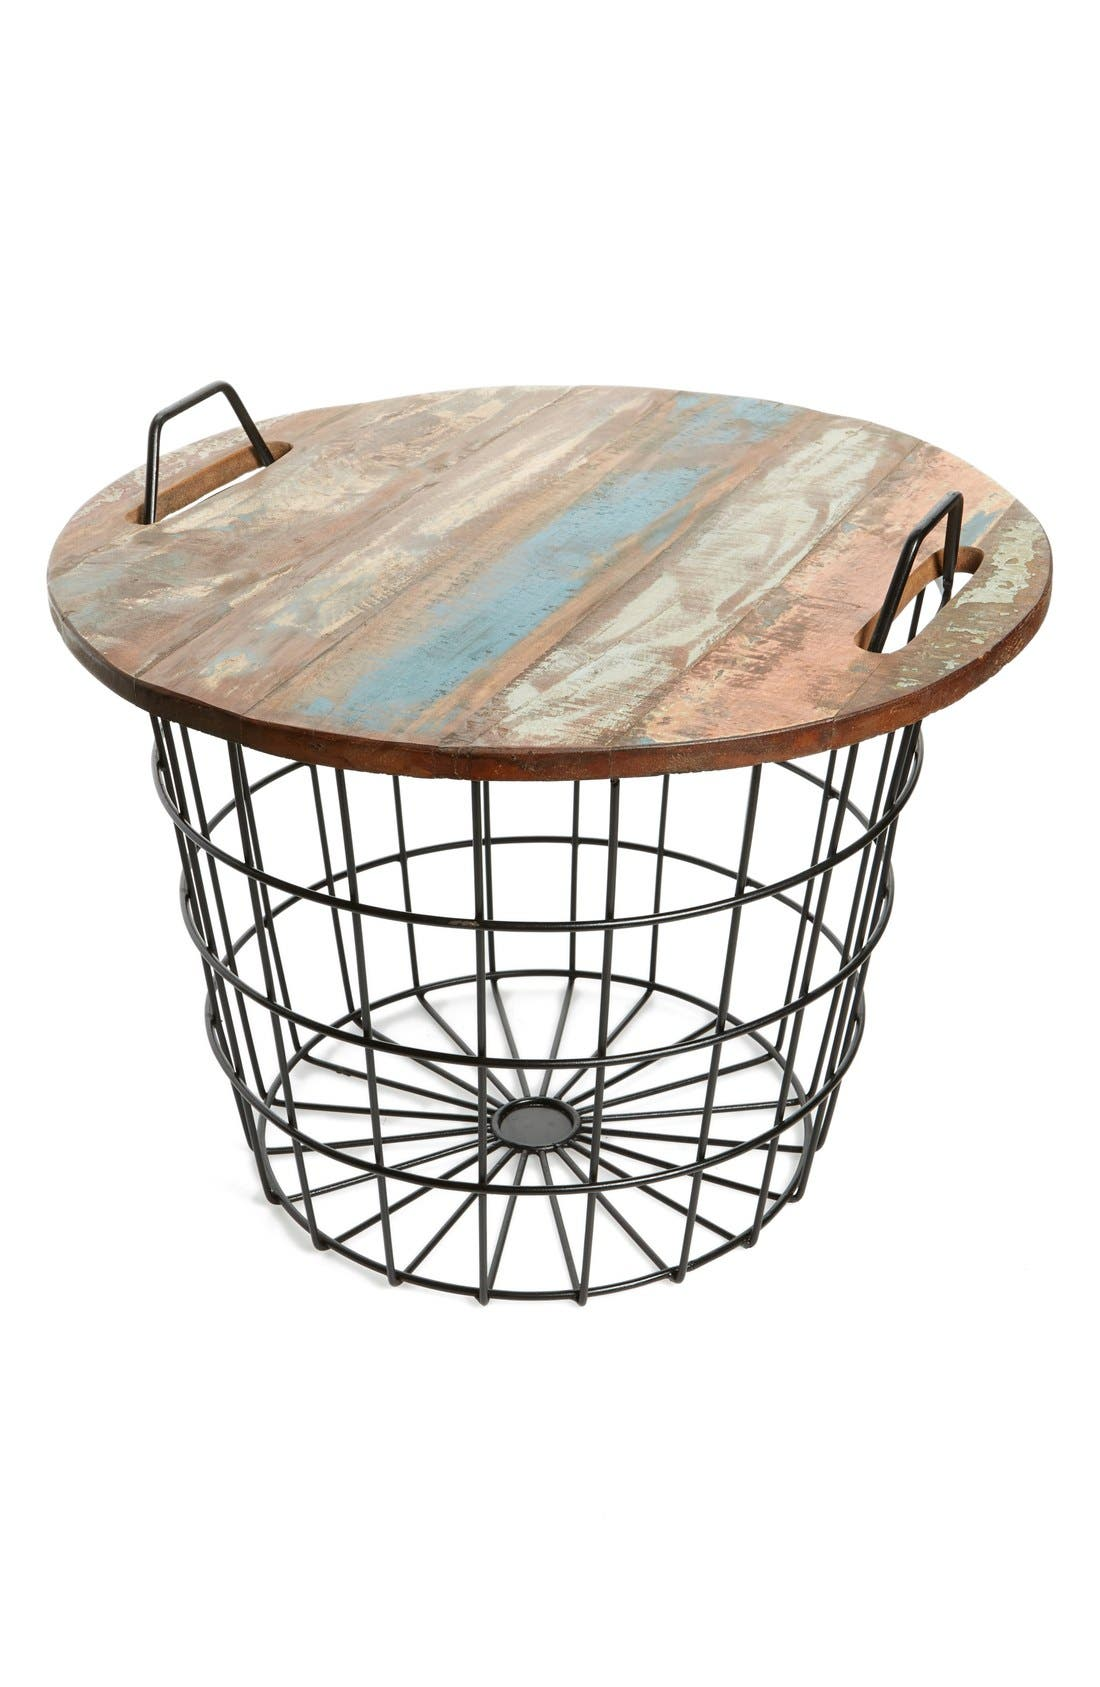 Alternate Image 1 Selected - Foreside Basket & Recycled Wood Storage Table